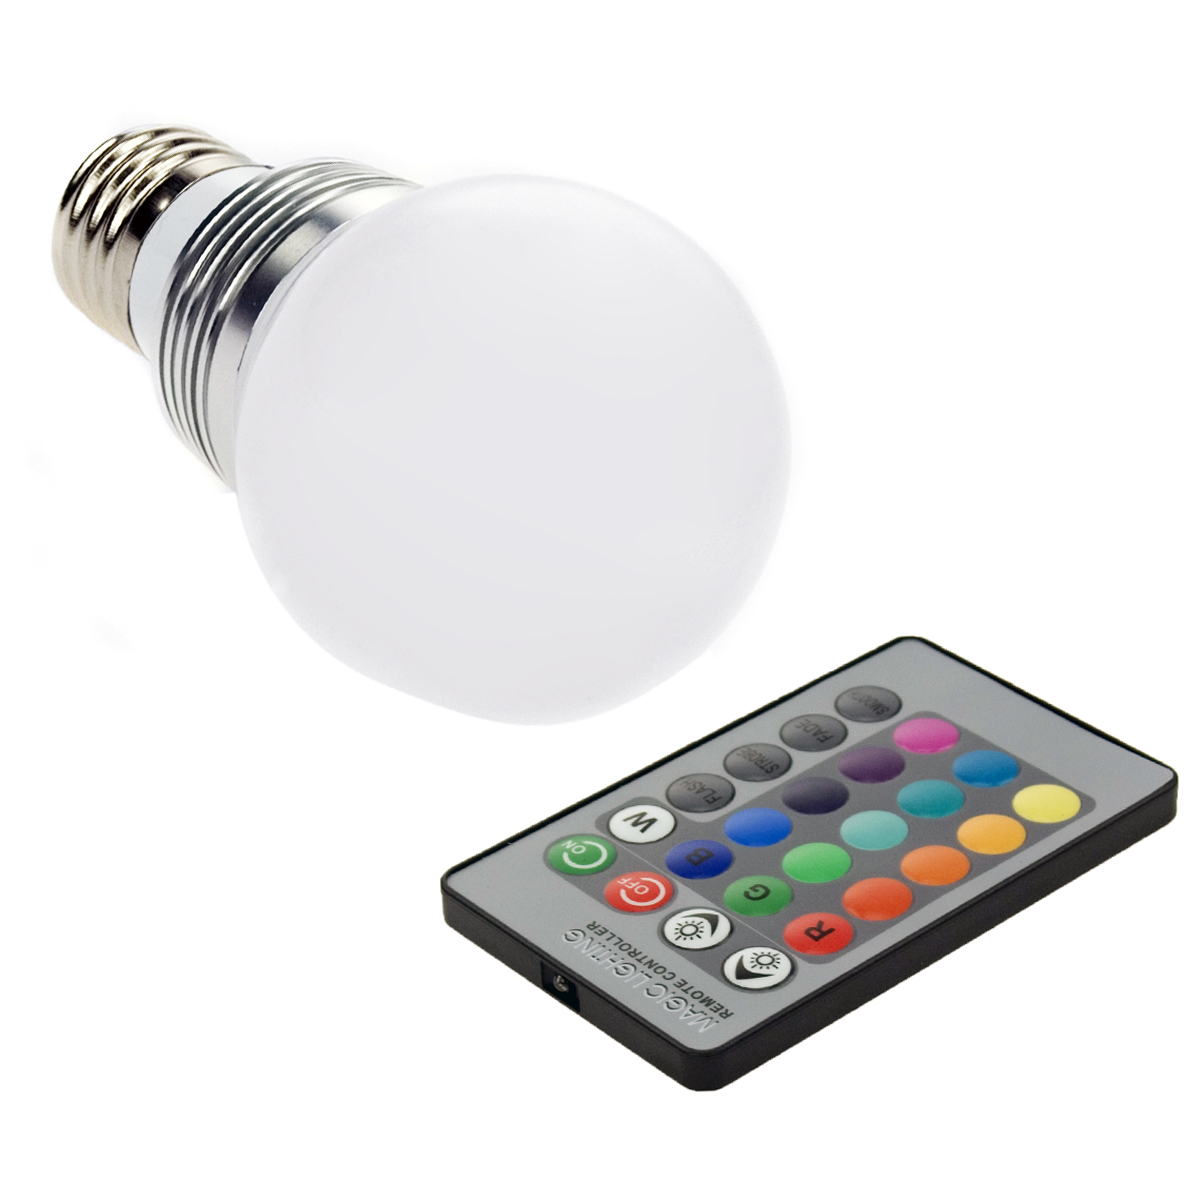 new e27 rgb led ampoule changement de couleur lampe spot bulb telecommande ld229 ebay. Black Bedroom Furniture Sets. Home Design Ideas